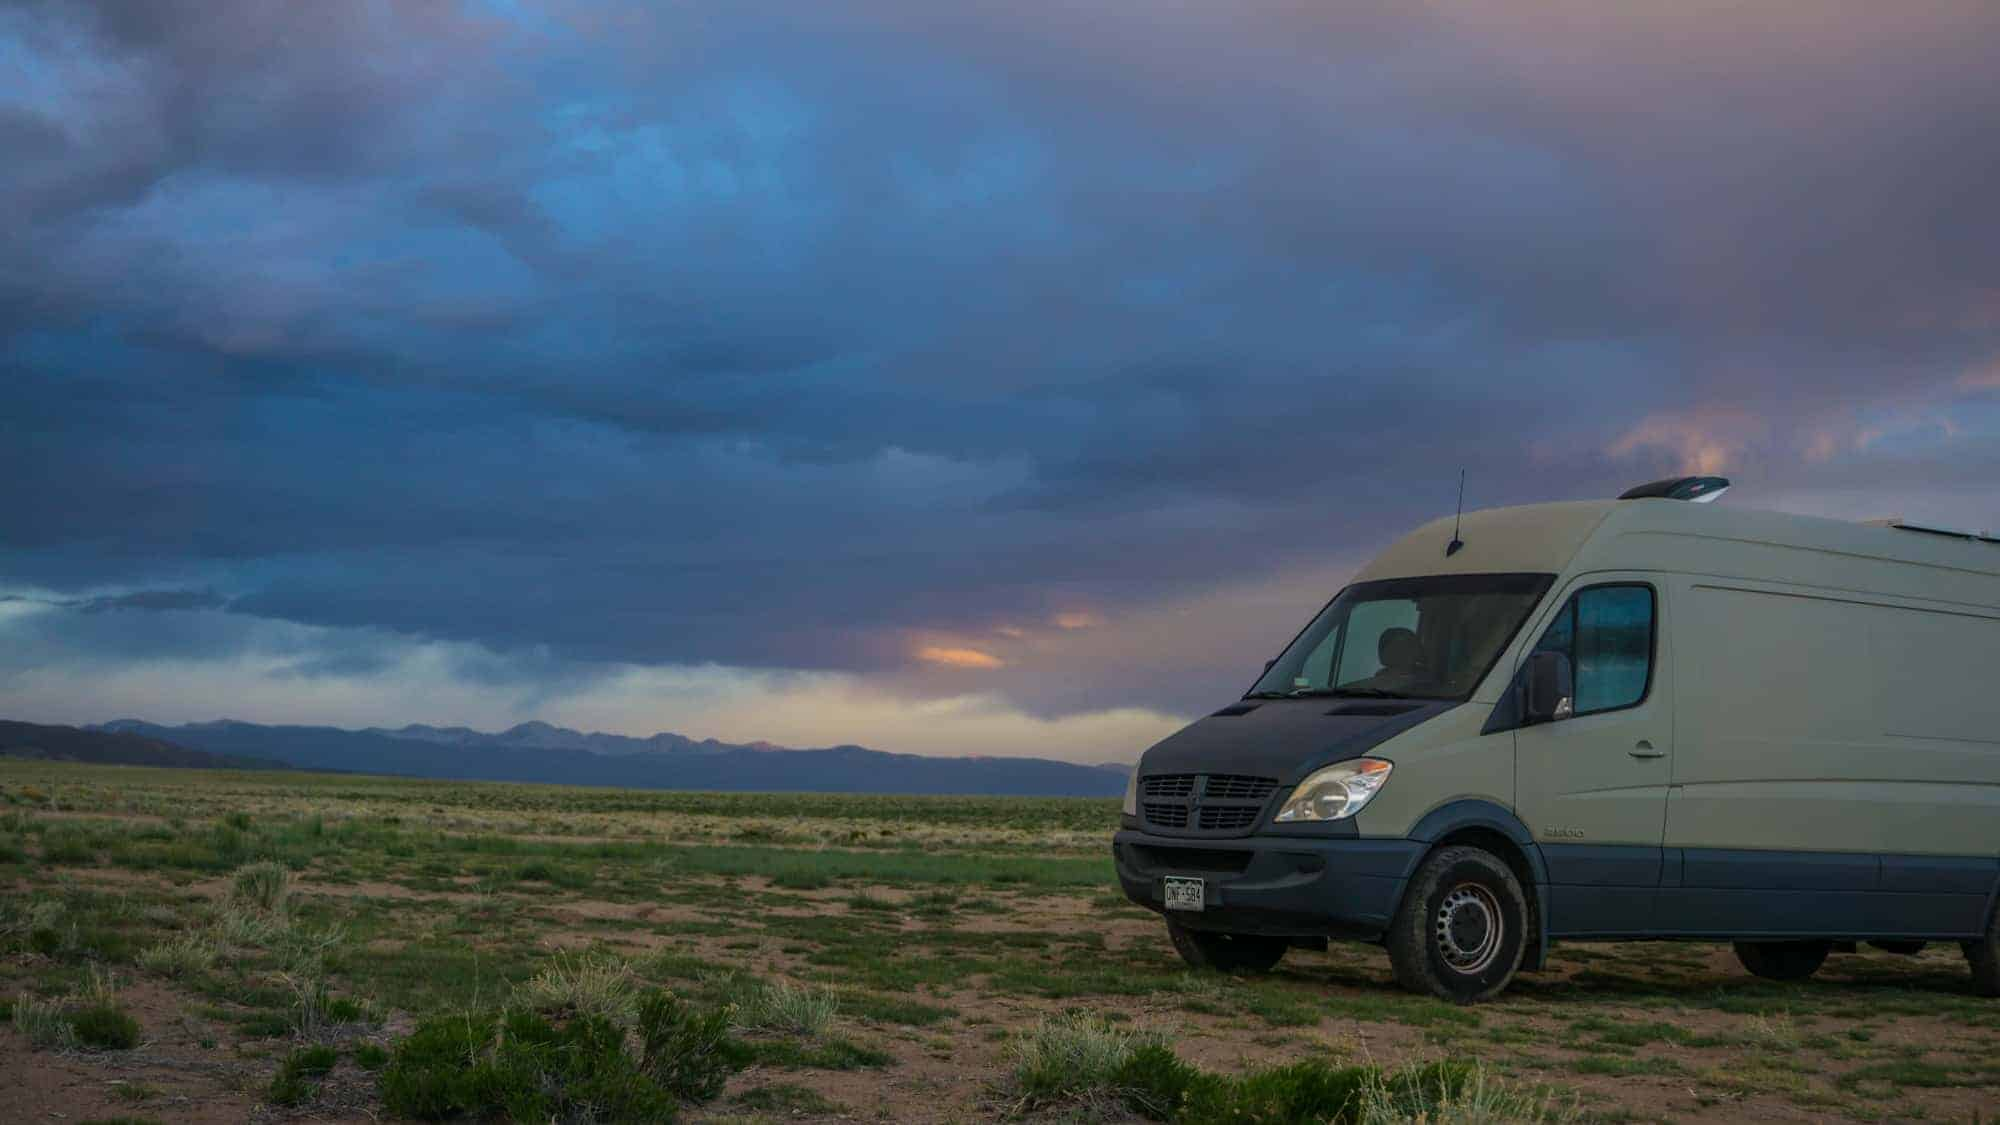 Free Dispersed Camping Near the Great Sand Dunes National Park, Colorado